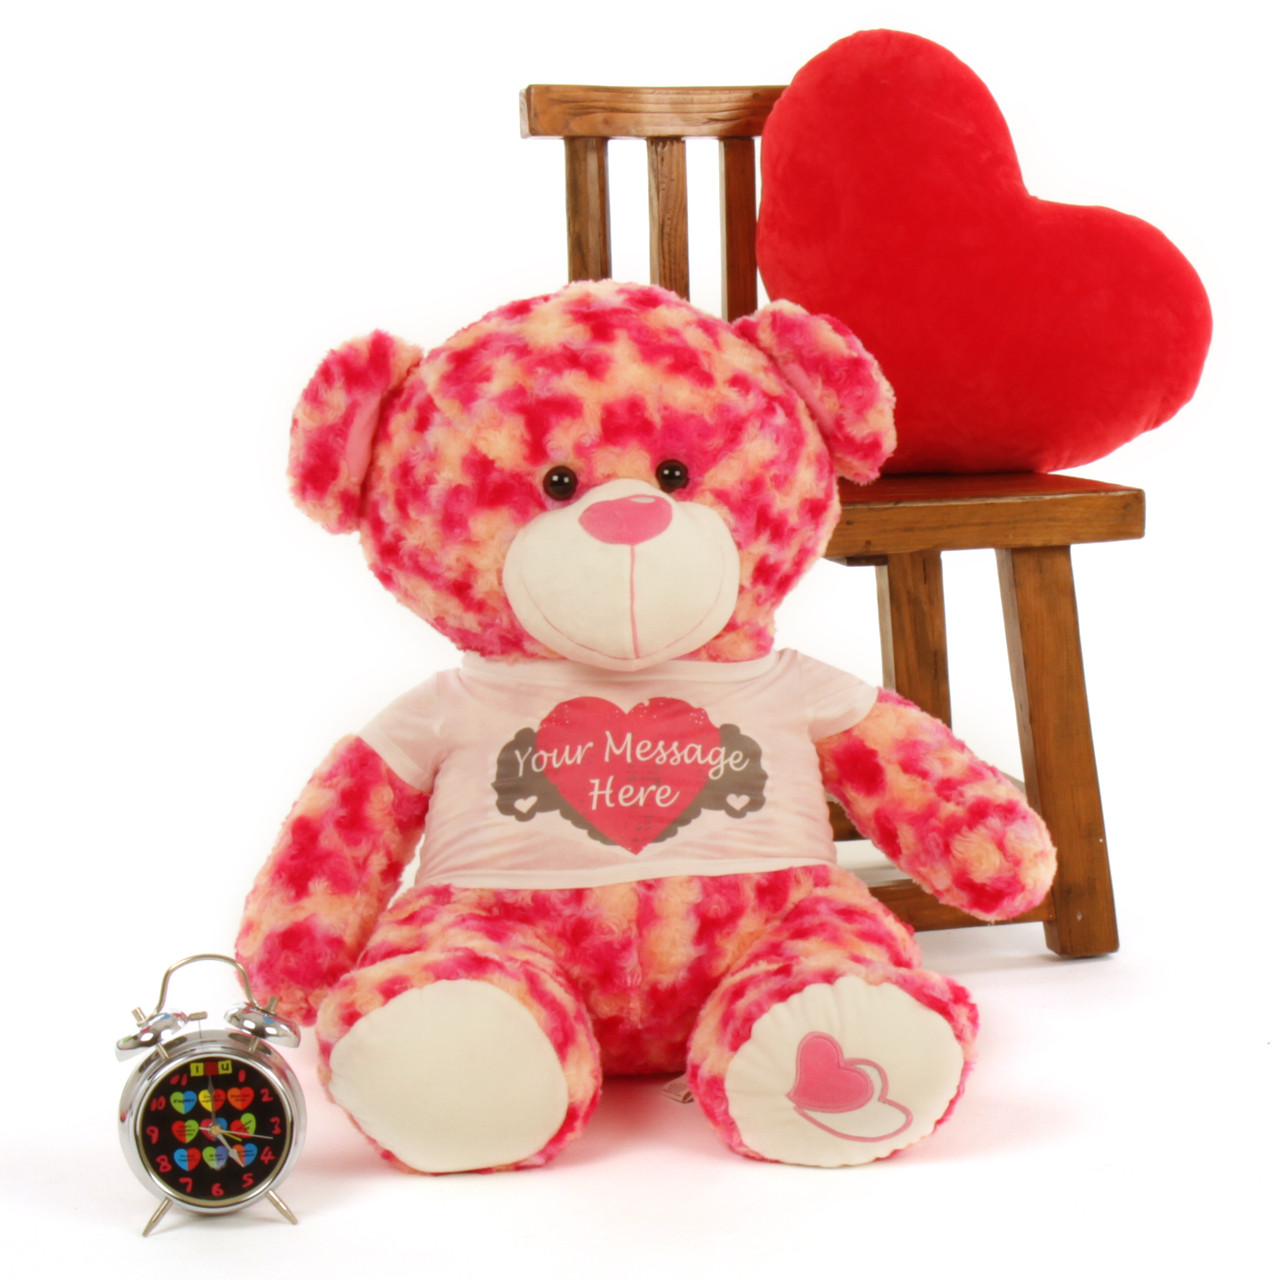 2 ft personalized sassy big love valentines day teddy bear heart pillow clock not included - Giant Teddy Bear For Valentines Day